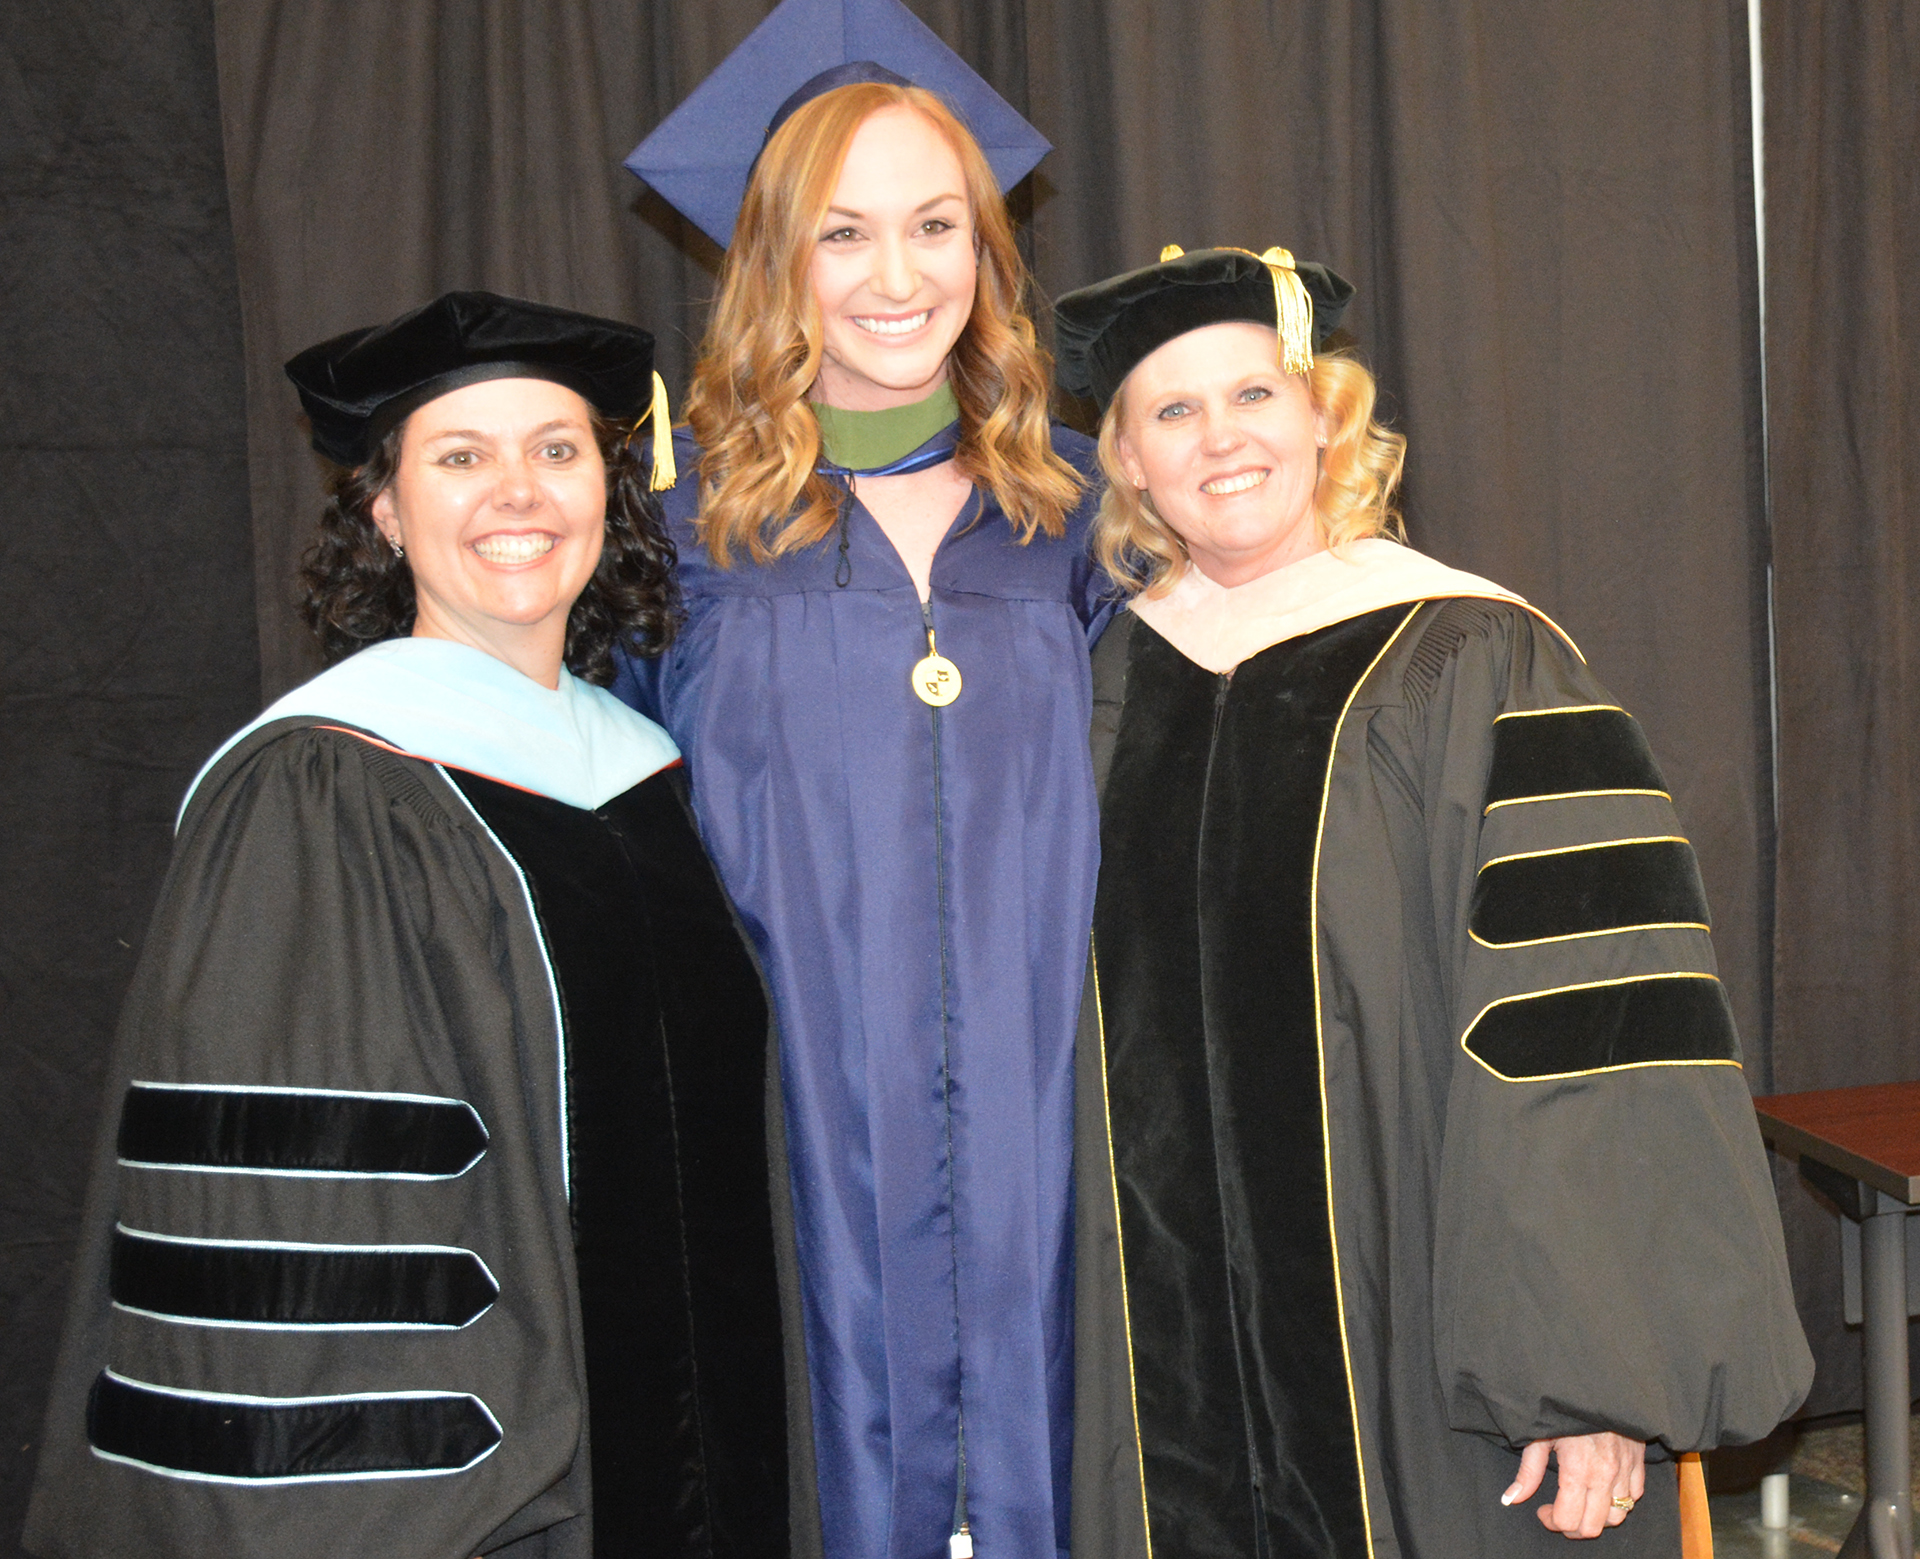 Graduate students participate in hooding ceremonies before commencement